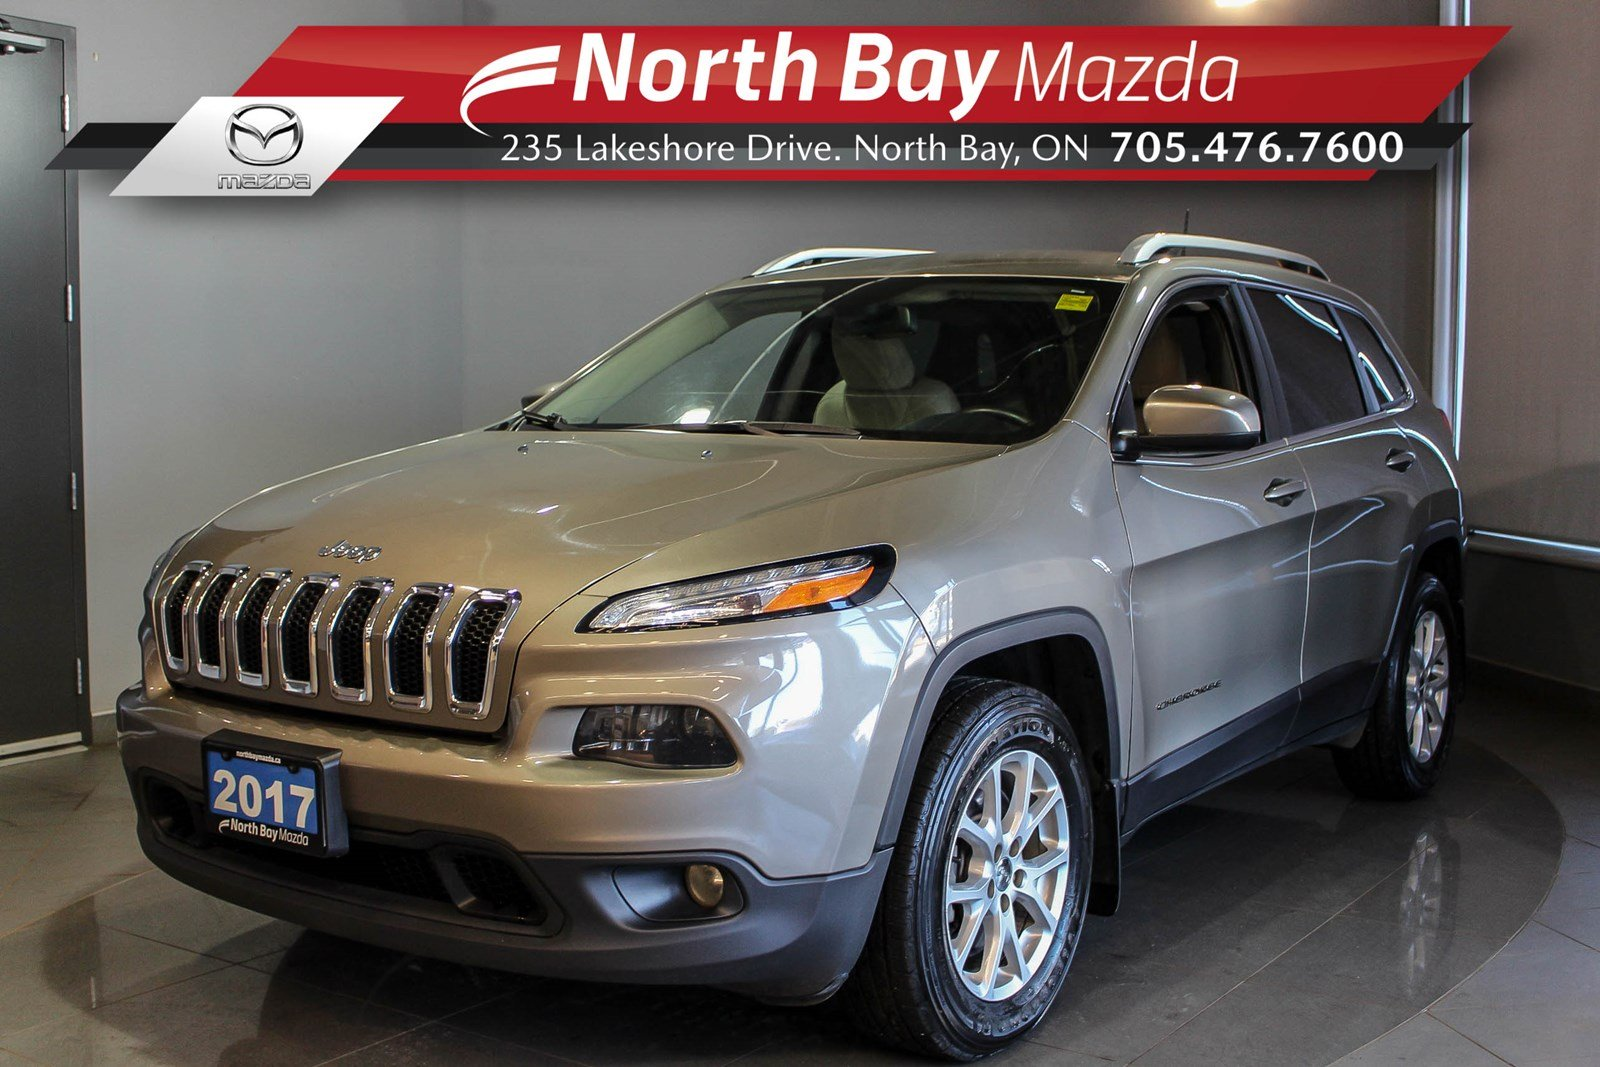 Pre-Owned 2017 Jeep Cherokee North 4x4 with Heated Seats, Cruise, Bluetooth